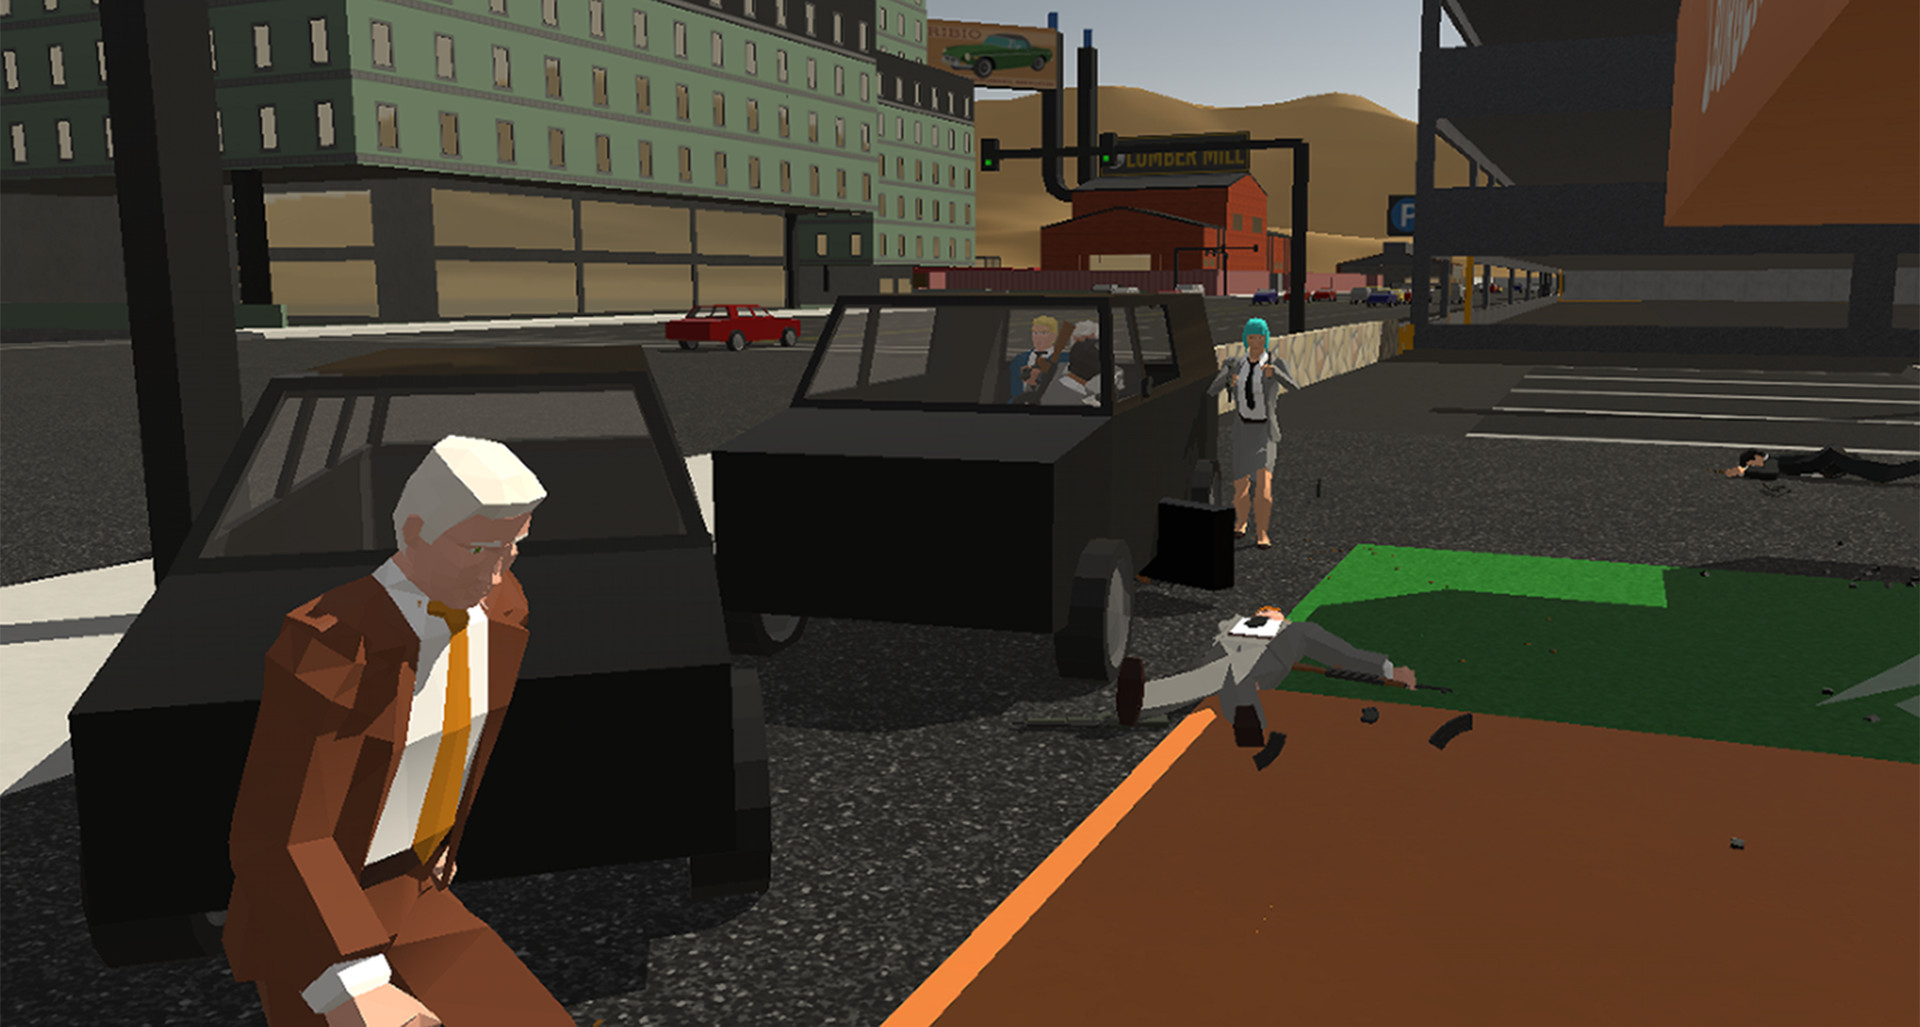 Find the best laptop for Sub Rosa